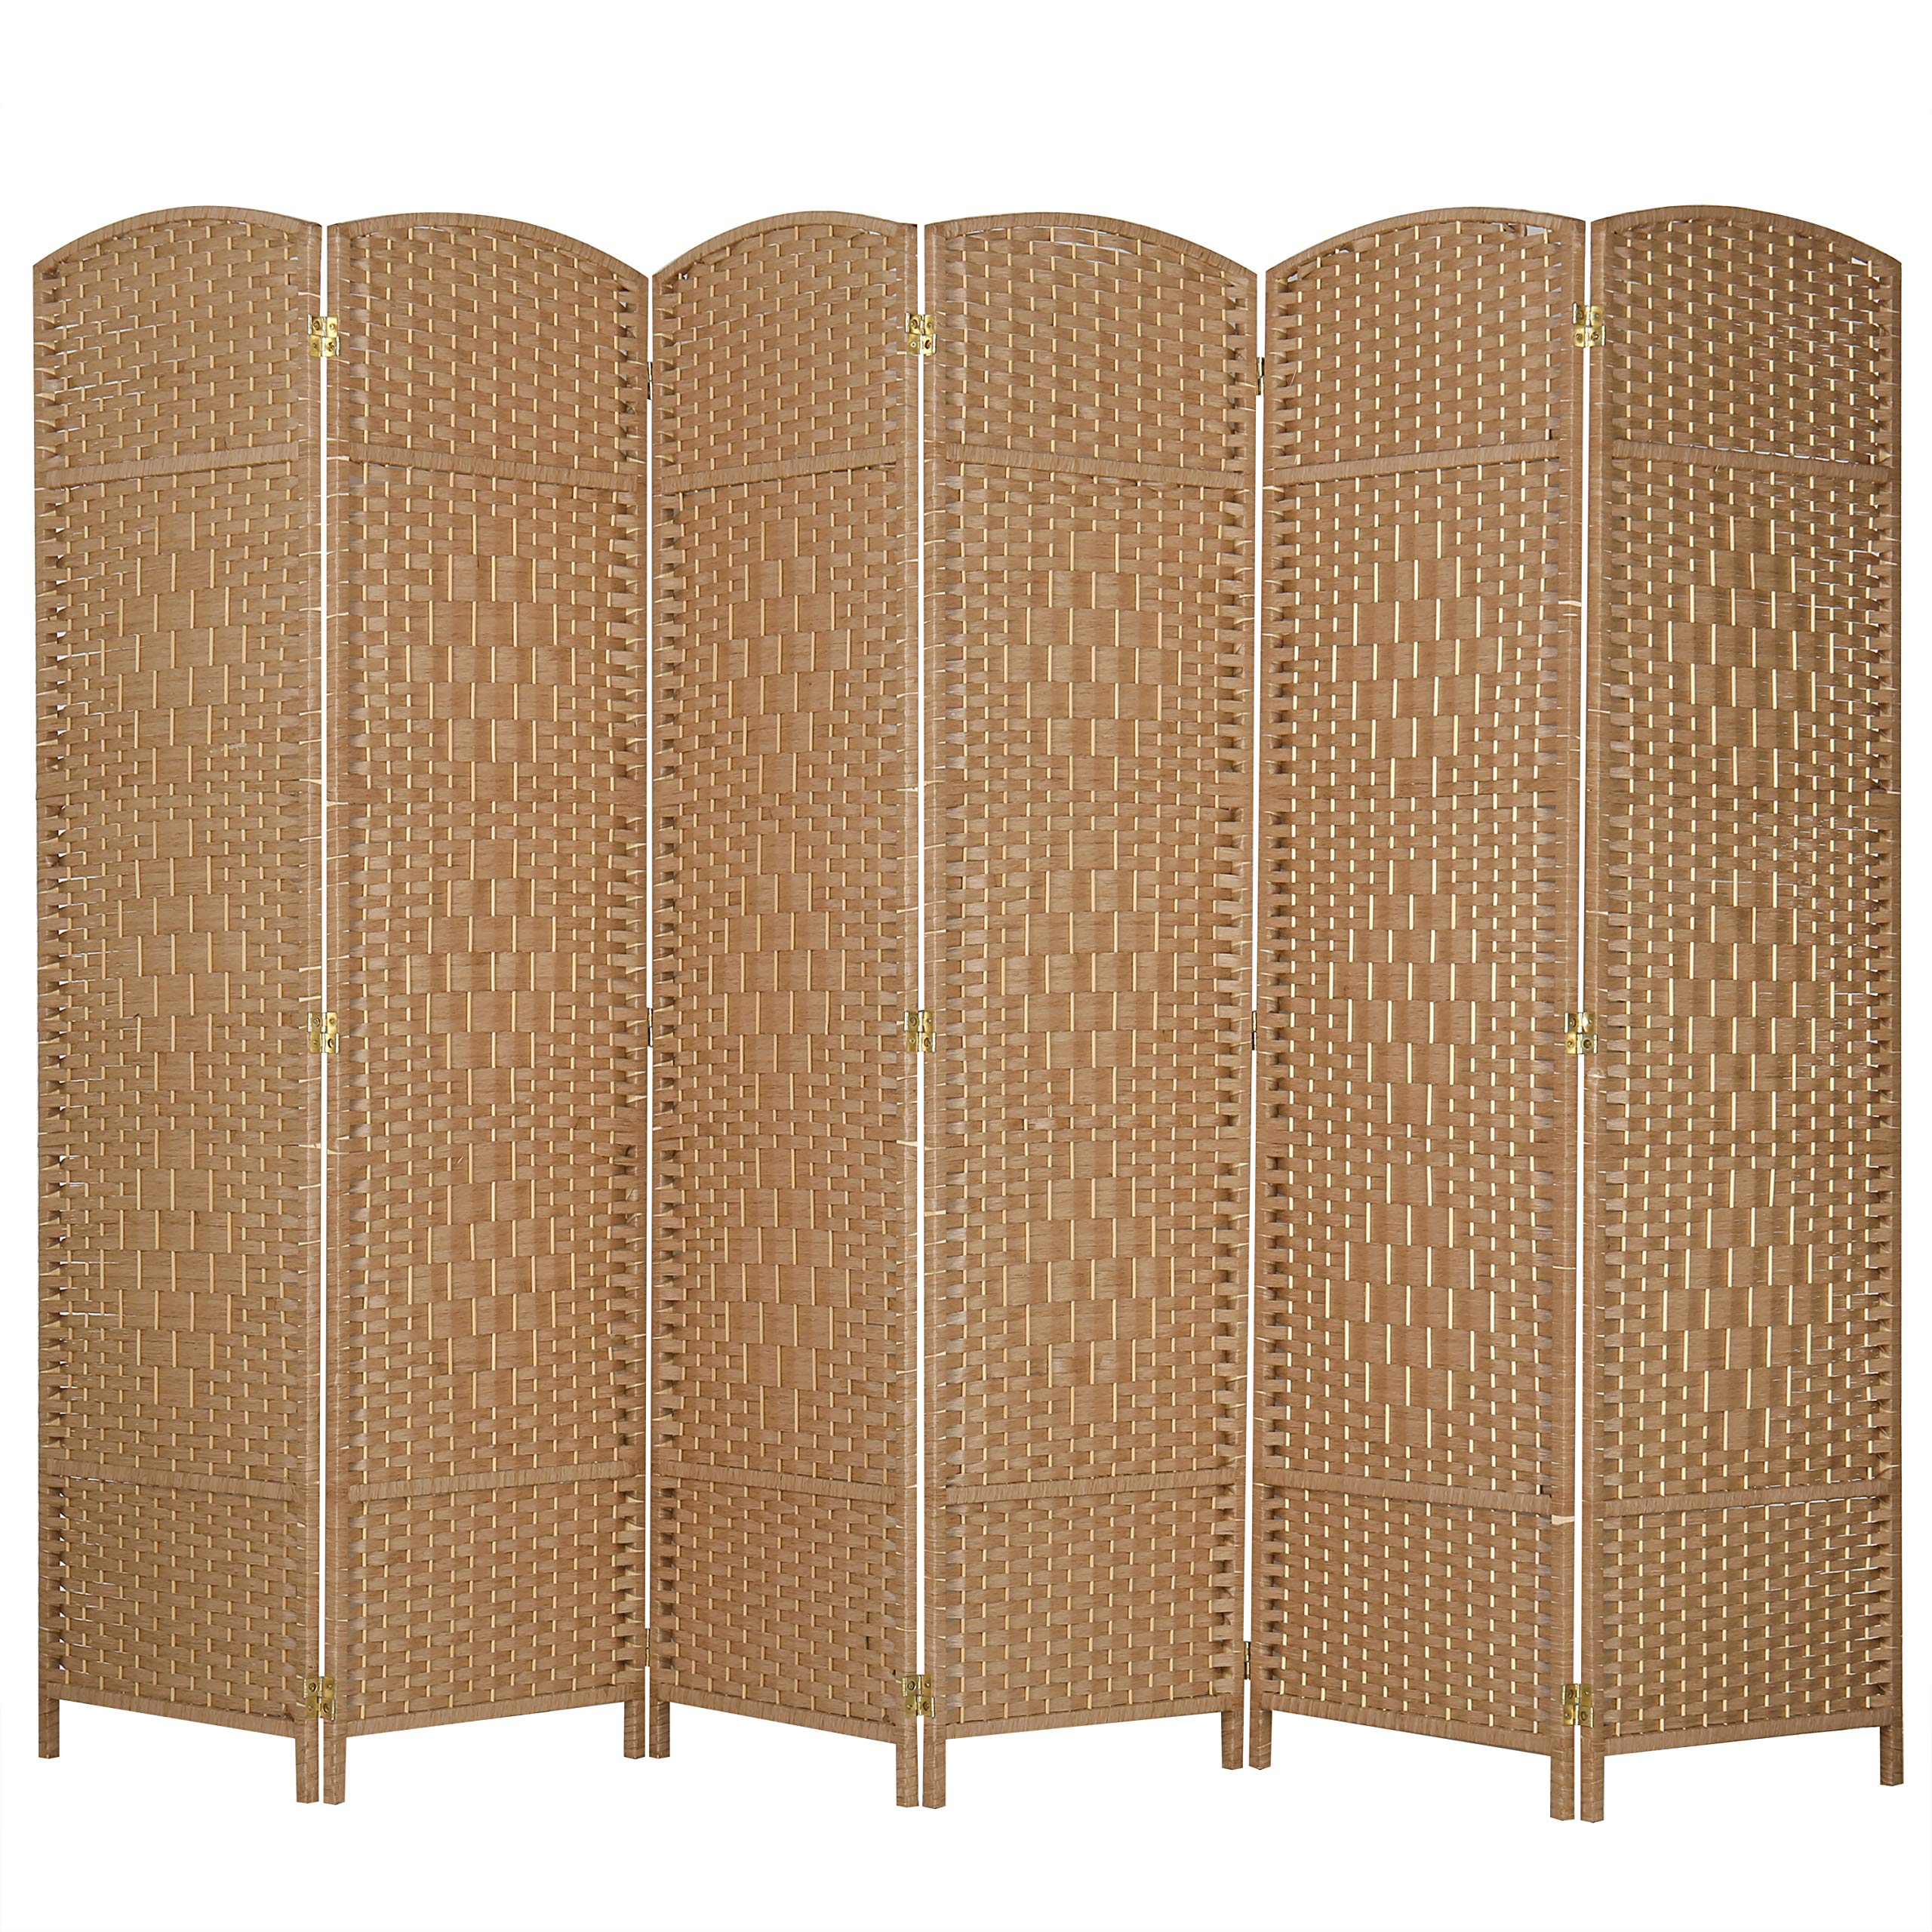 MyGift 6-Panel Woven Beige Wicker Room Divider with Two-Way Hinges by MyGift